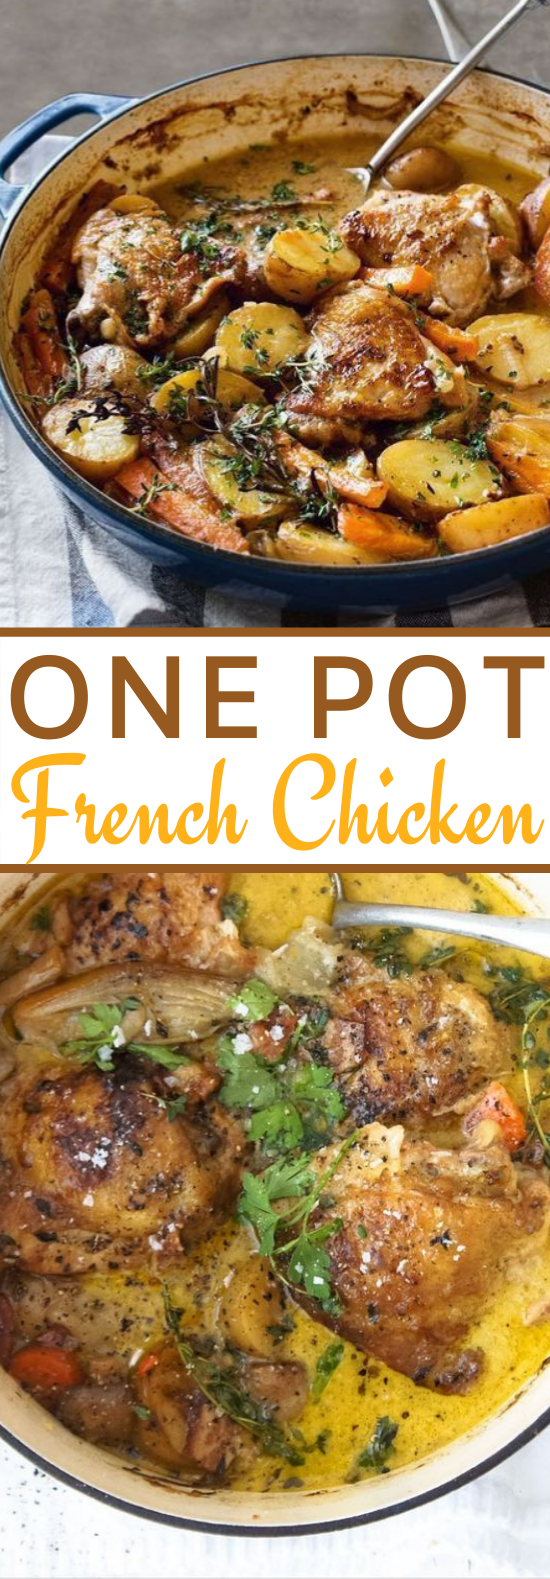 One-Pot French Chicken #dinner #chicken #recipes #weeknight #easy